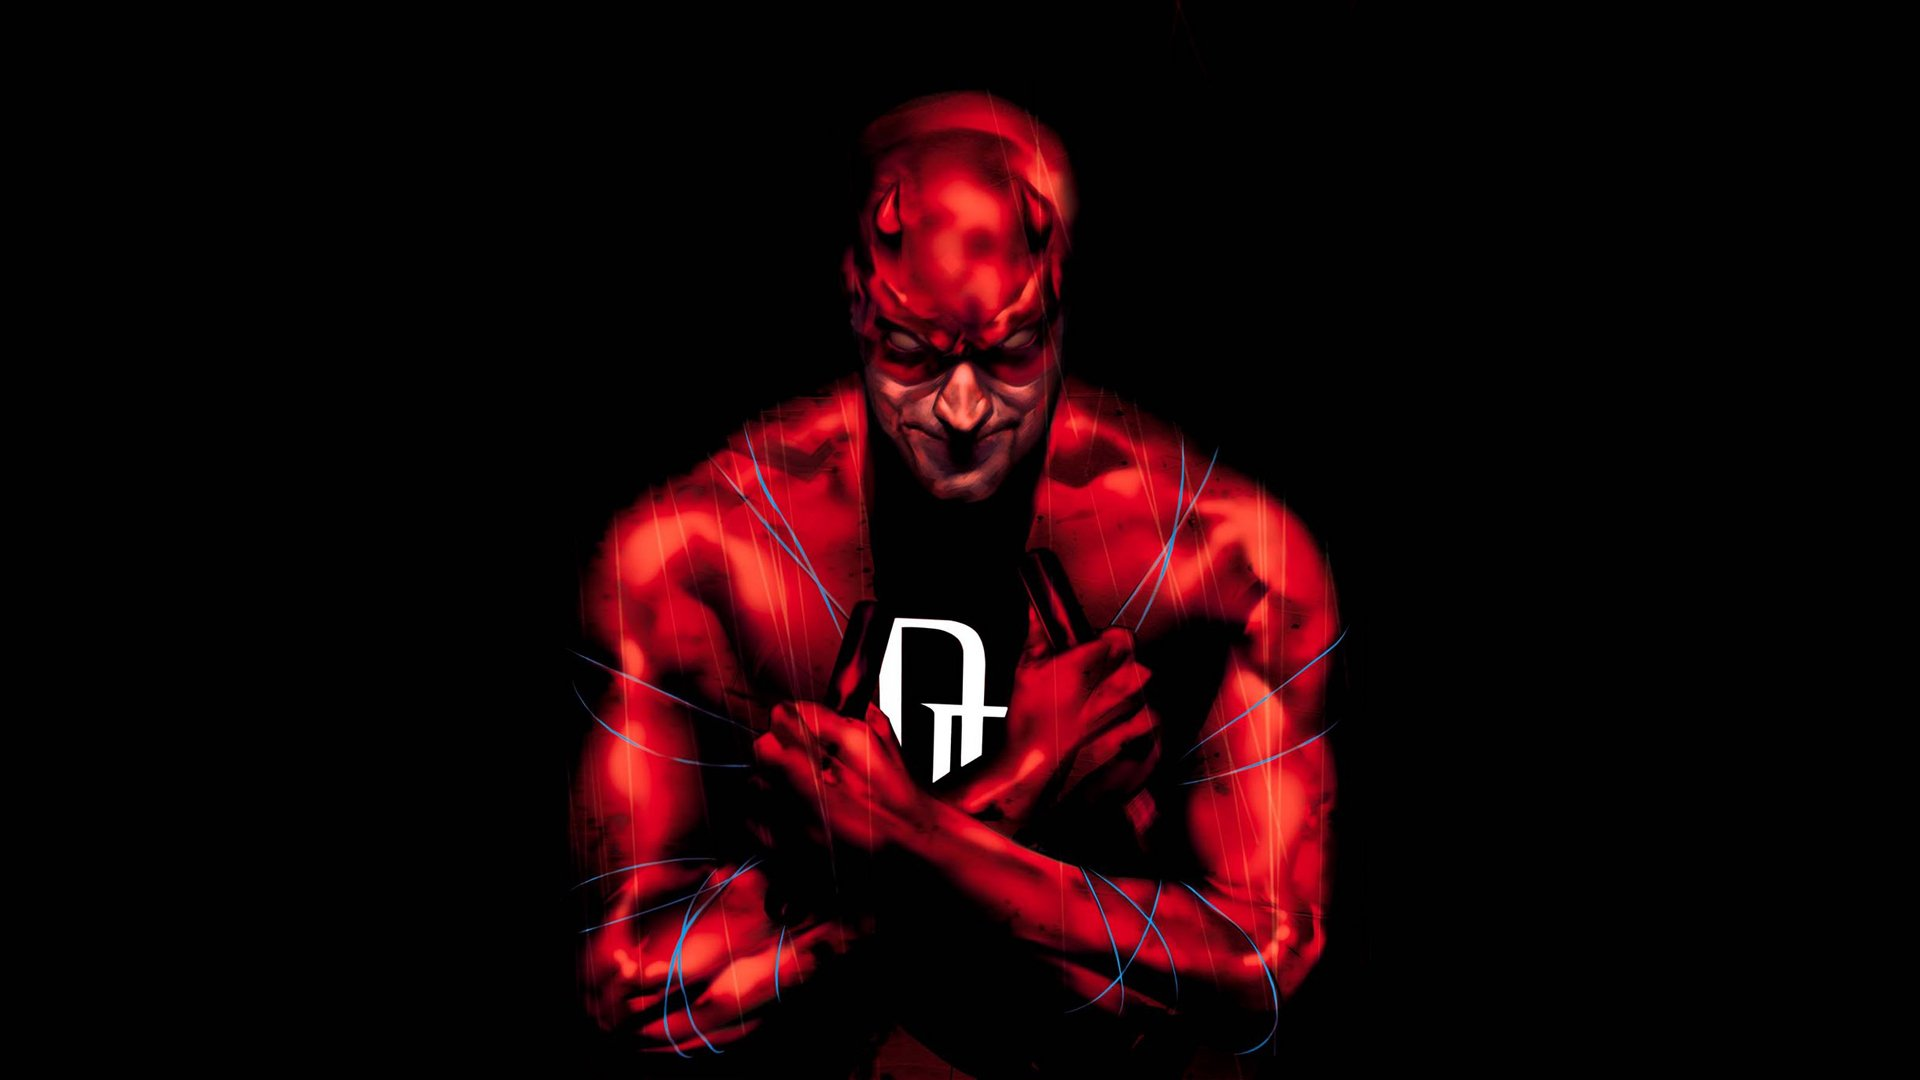 174 Daredevil HD Wallpapers | Backgrounds - Wallpaper Abyss